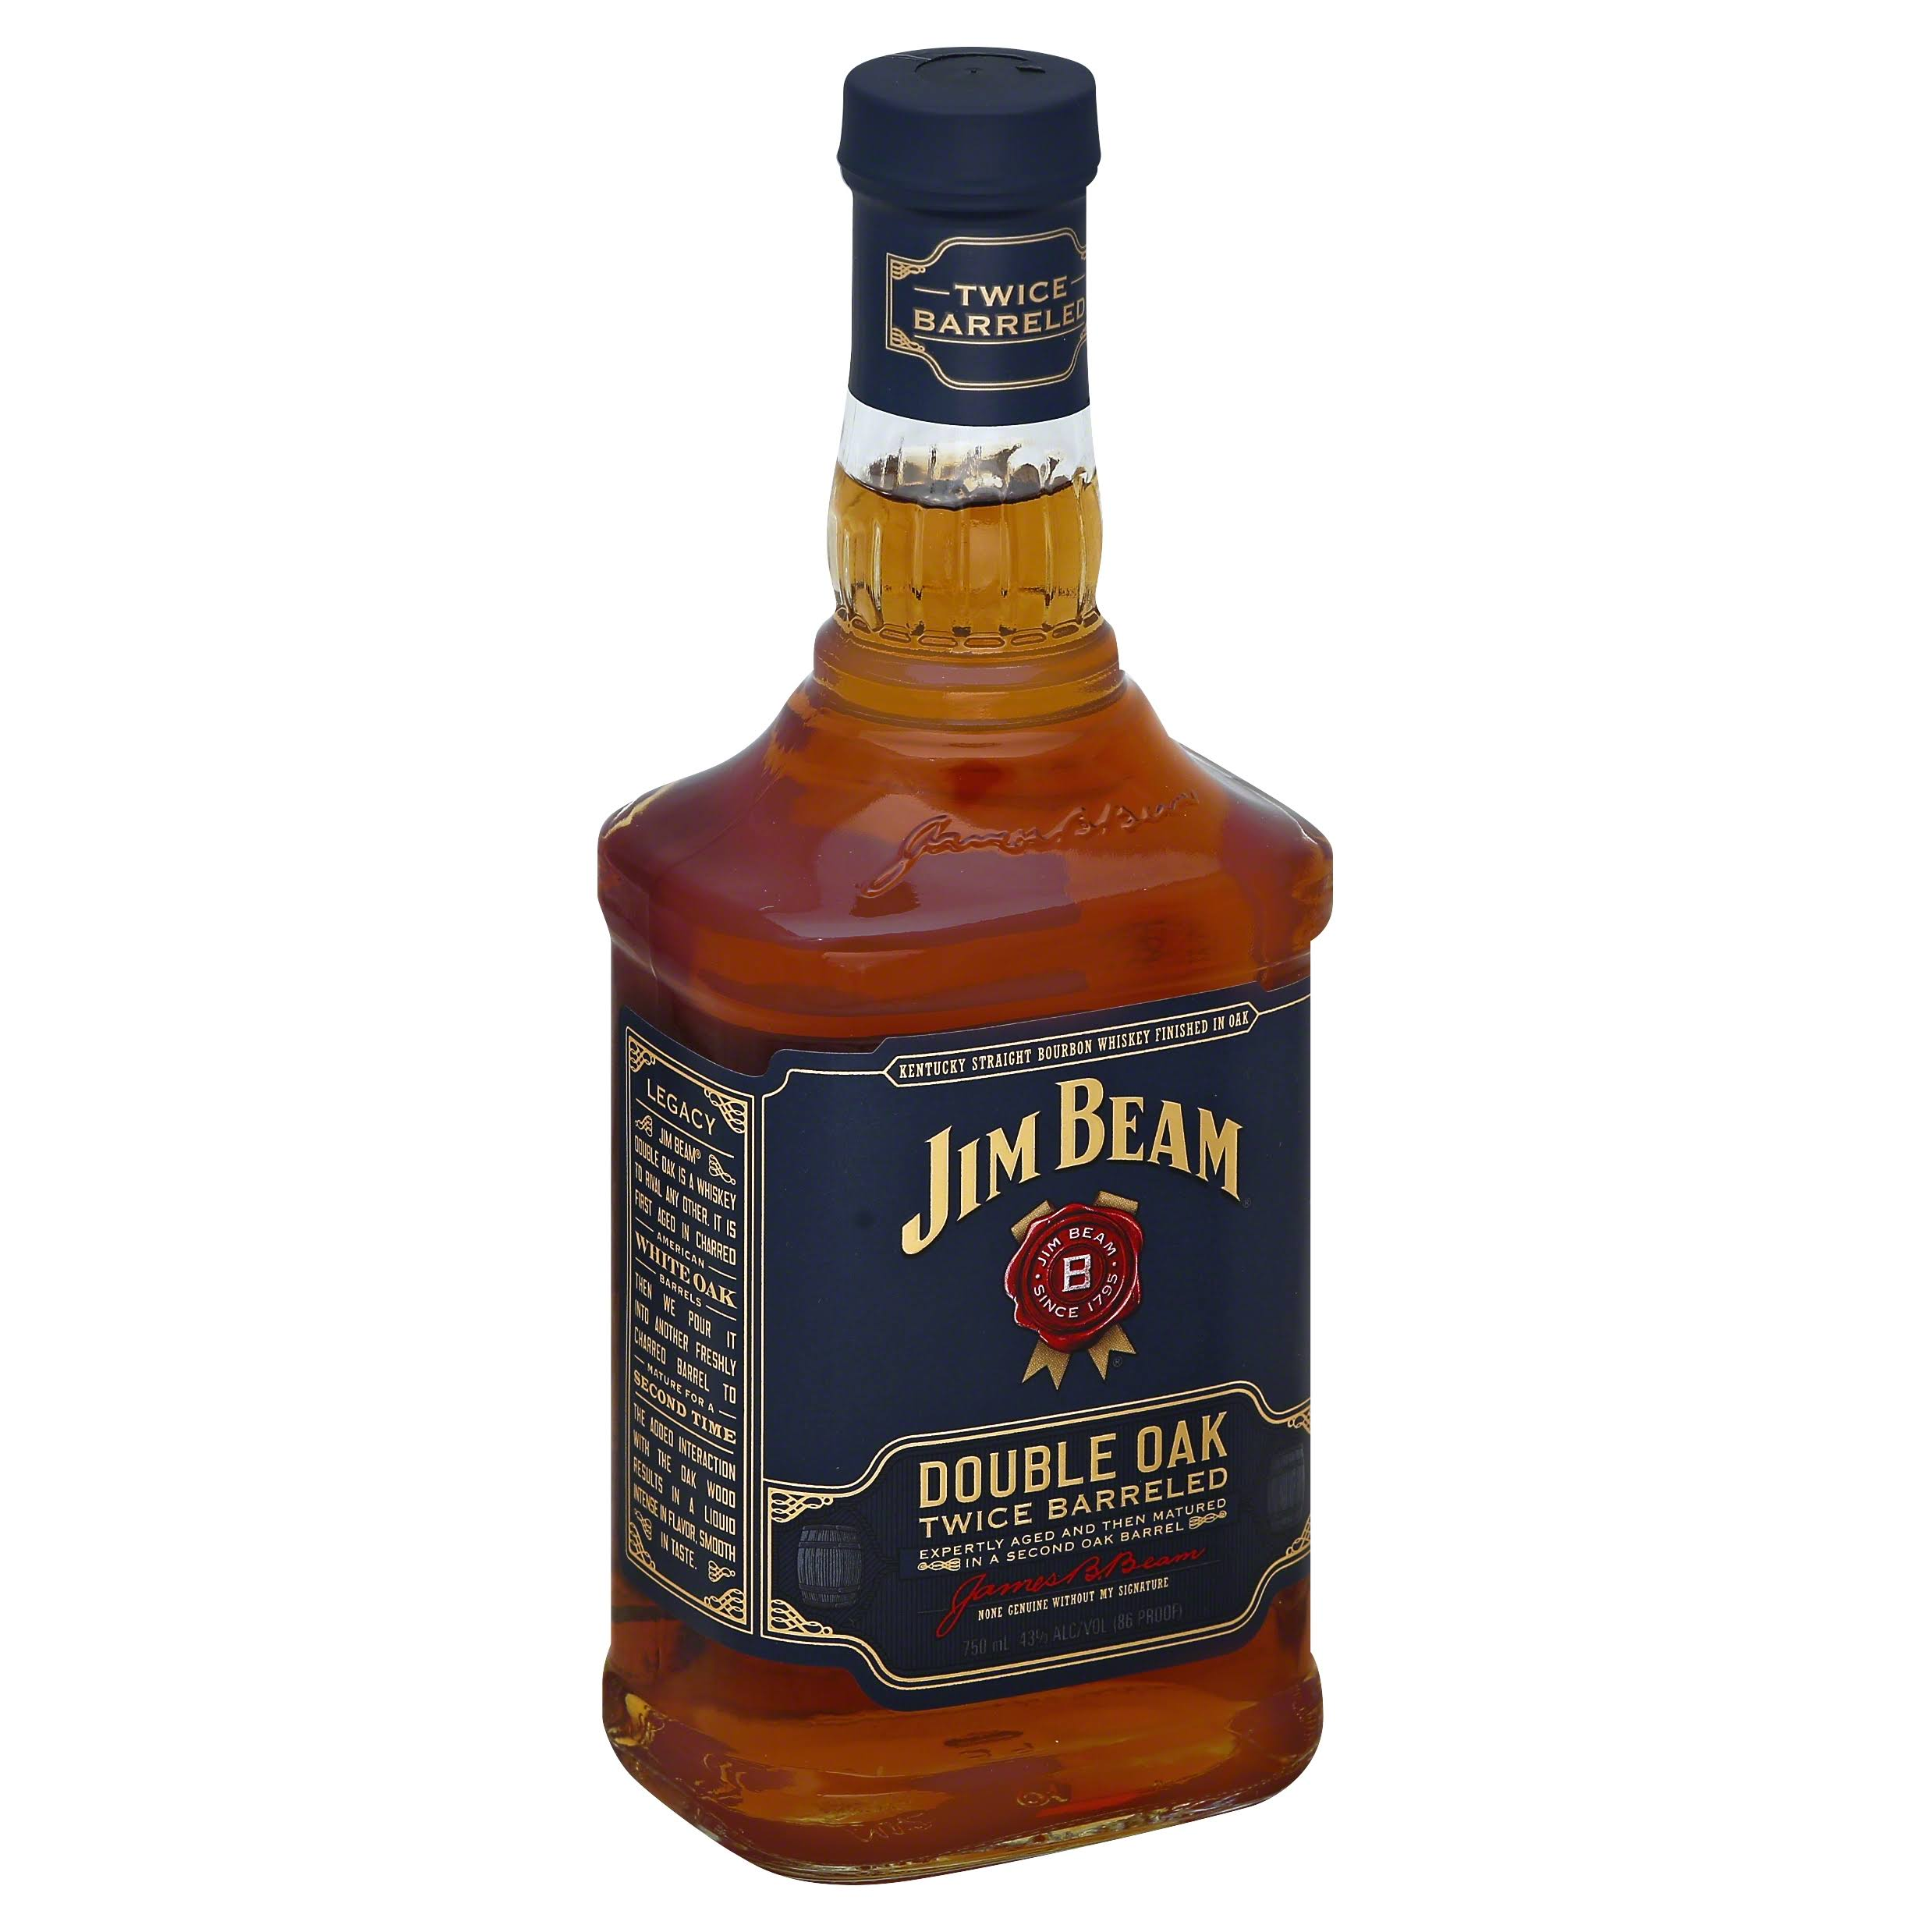 Jim Beam Whiskey, Kentucky Straight Bourbon, Double Oak Twice Barreled - 750 ml